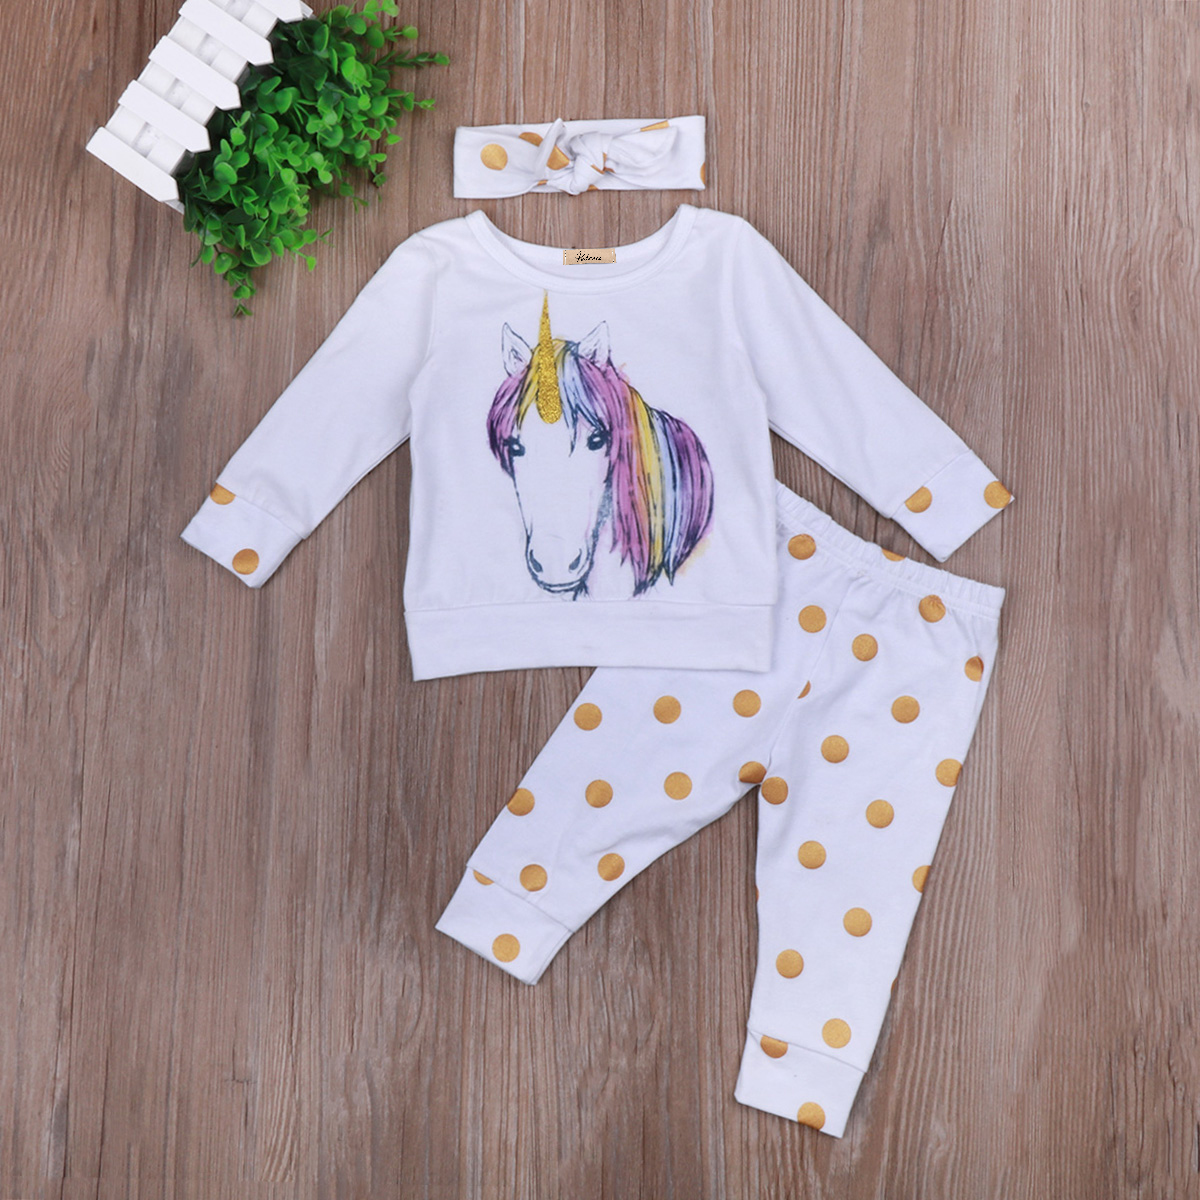 5c529c5399637 Babies 3 PCS Unicorn Clothing Set Newborn Baby Boy Girl Kid Unicorns Polka  Dots Outfit Clothes T shirt Top Pants Headband Sets-in Clothing Sets from  Mother ...